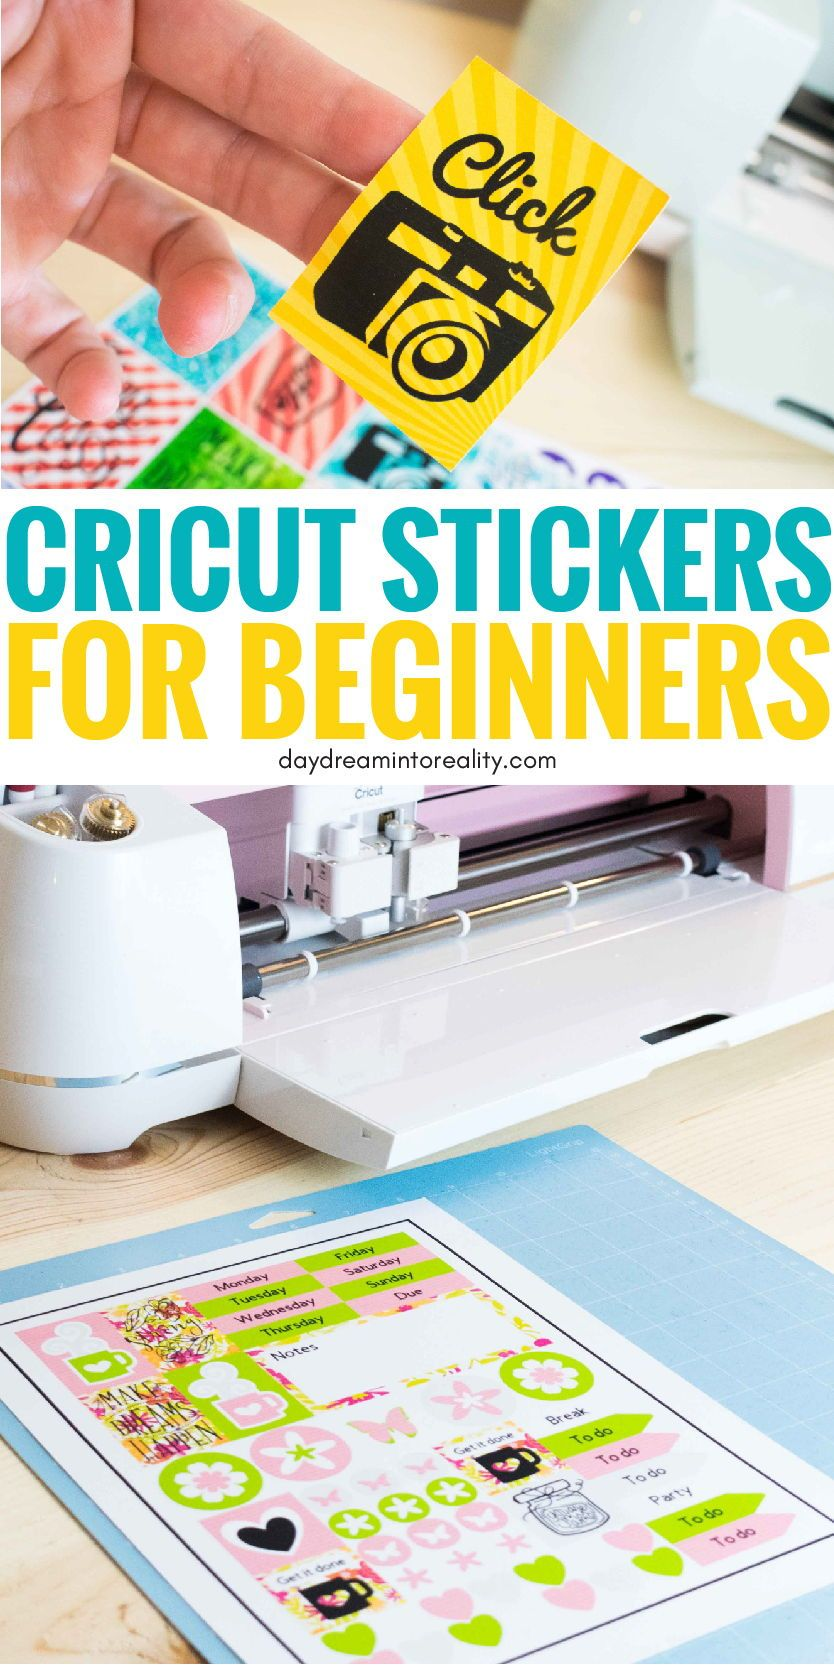 44++ How to create stickers with cricut ideas in 2021